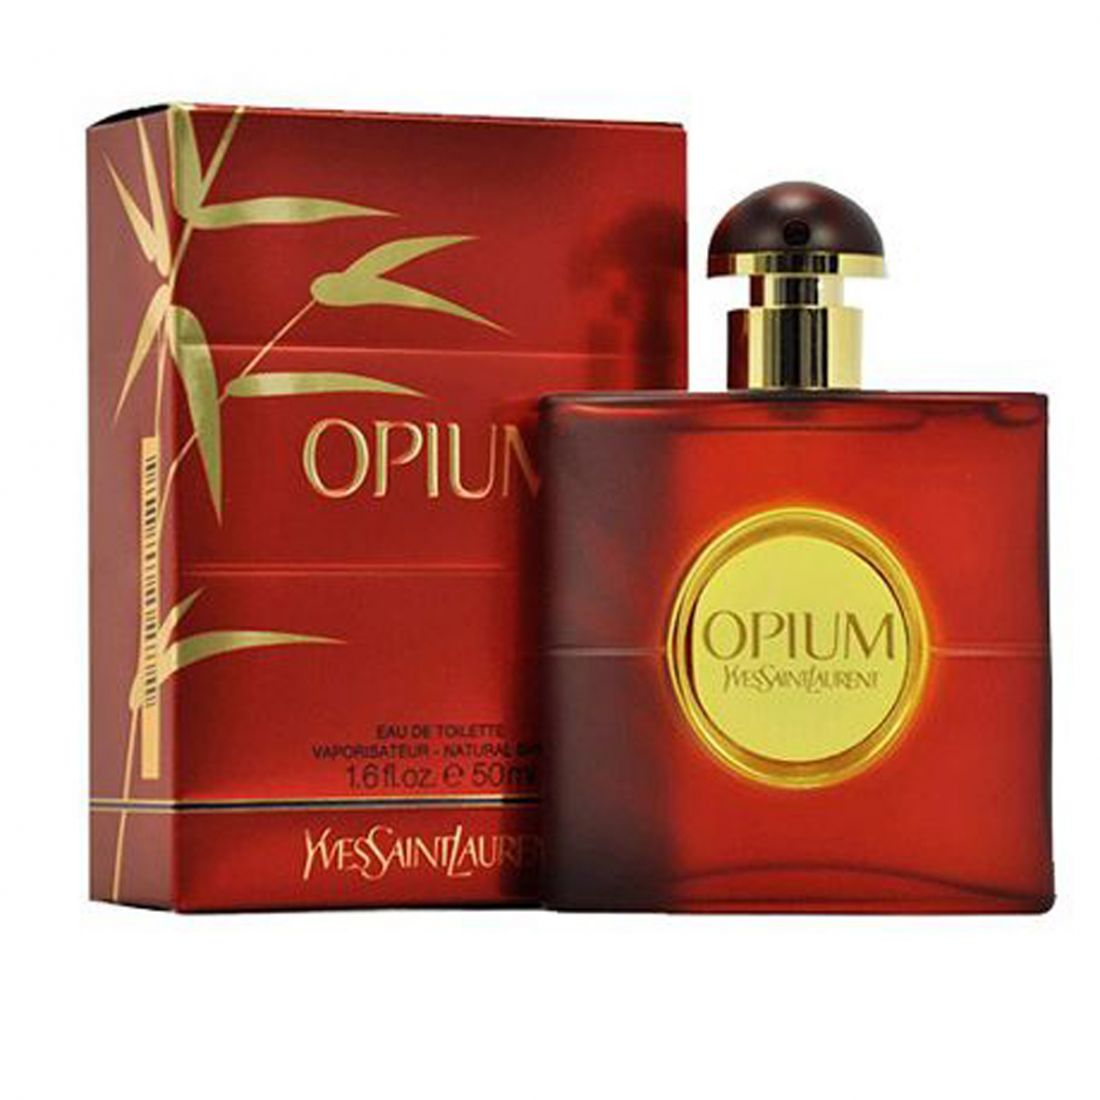 Yves Saint Laurent - Opium, 50 ml